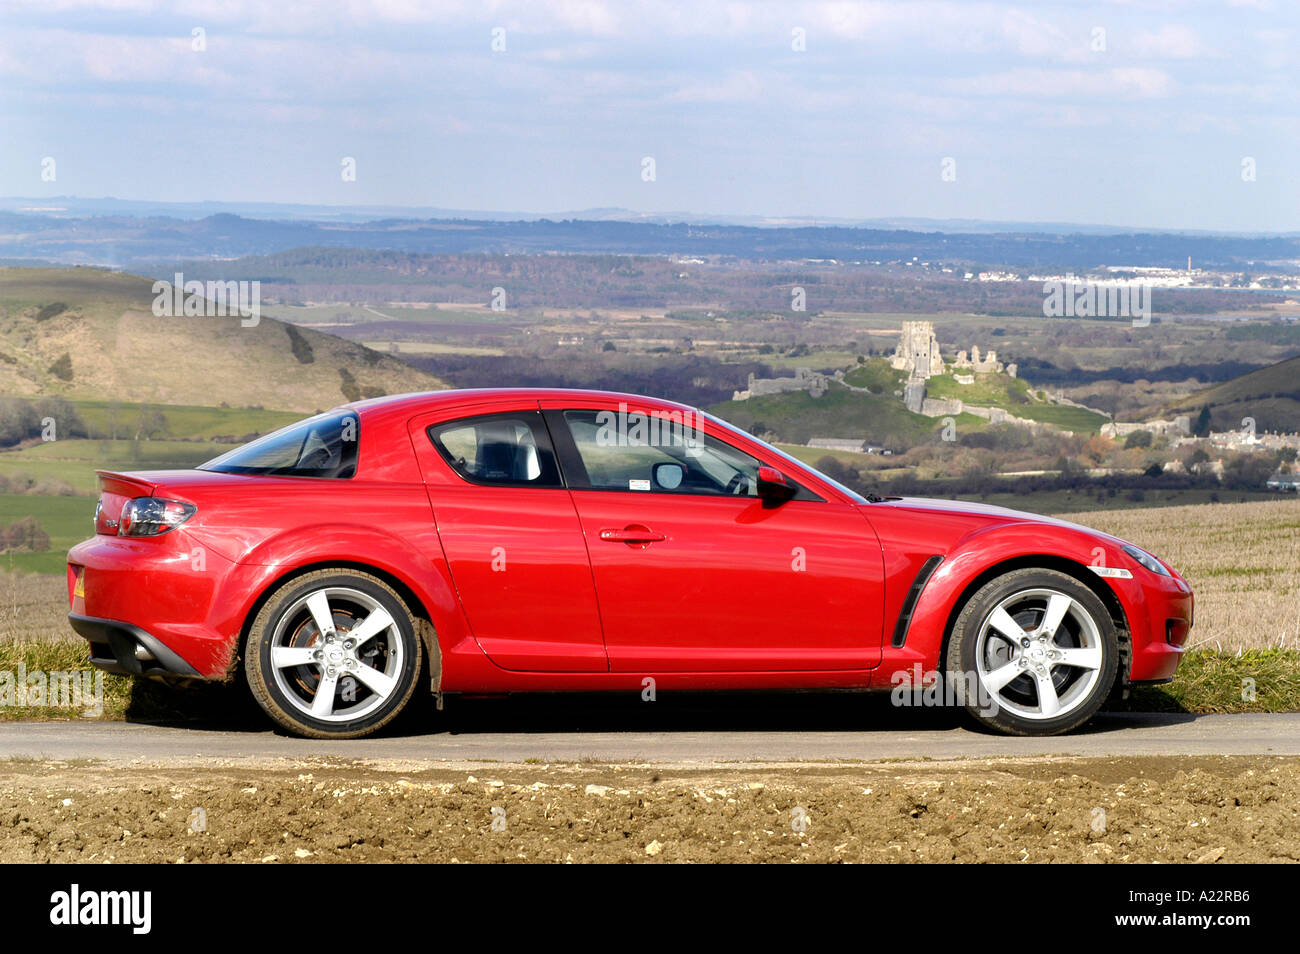 2004 mazda rx8 stock photo royalty free image 3391413 alamy. Black Bedroom Furniture Sets. Home Design Ideas